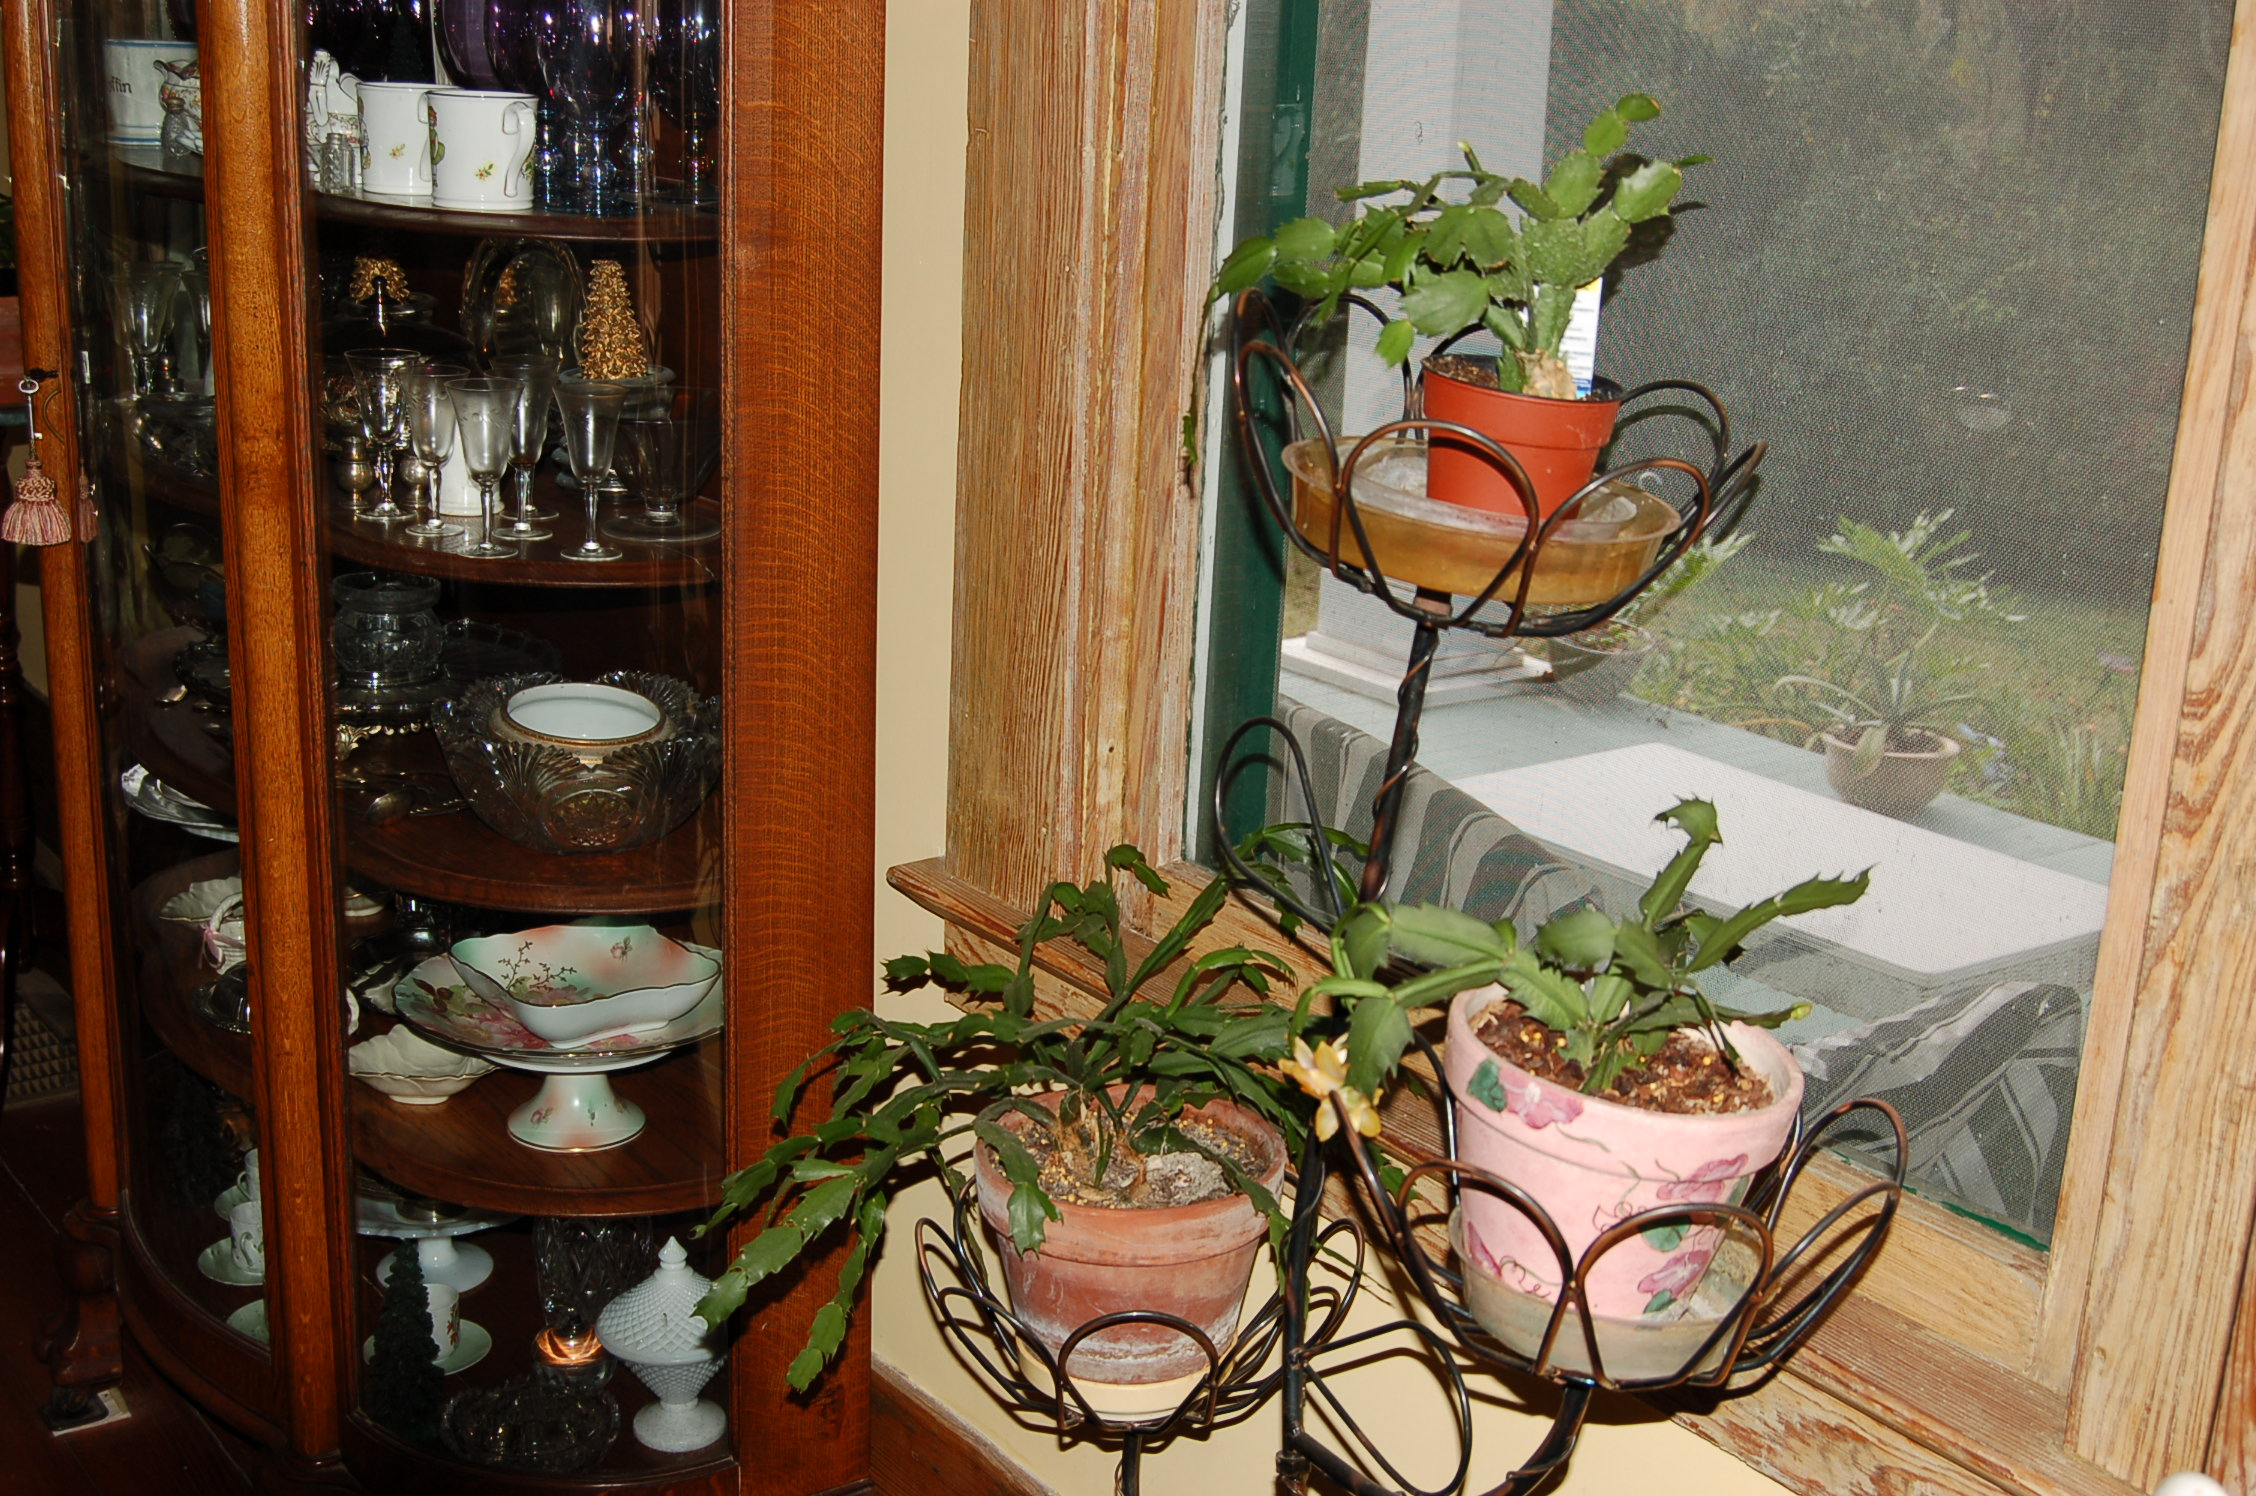 Plan carefully for growing plants indoors